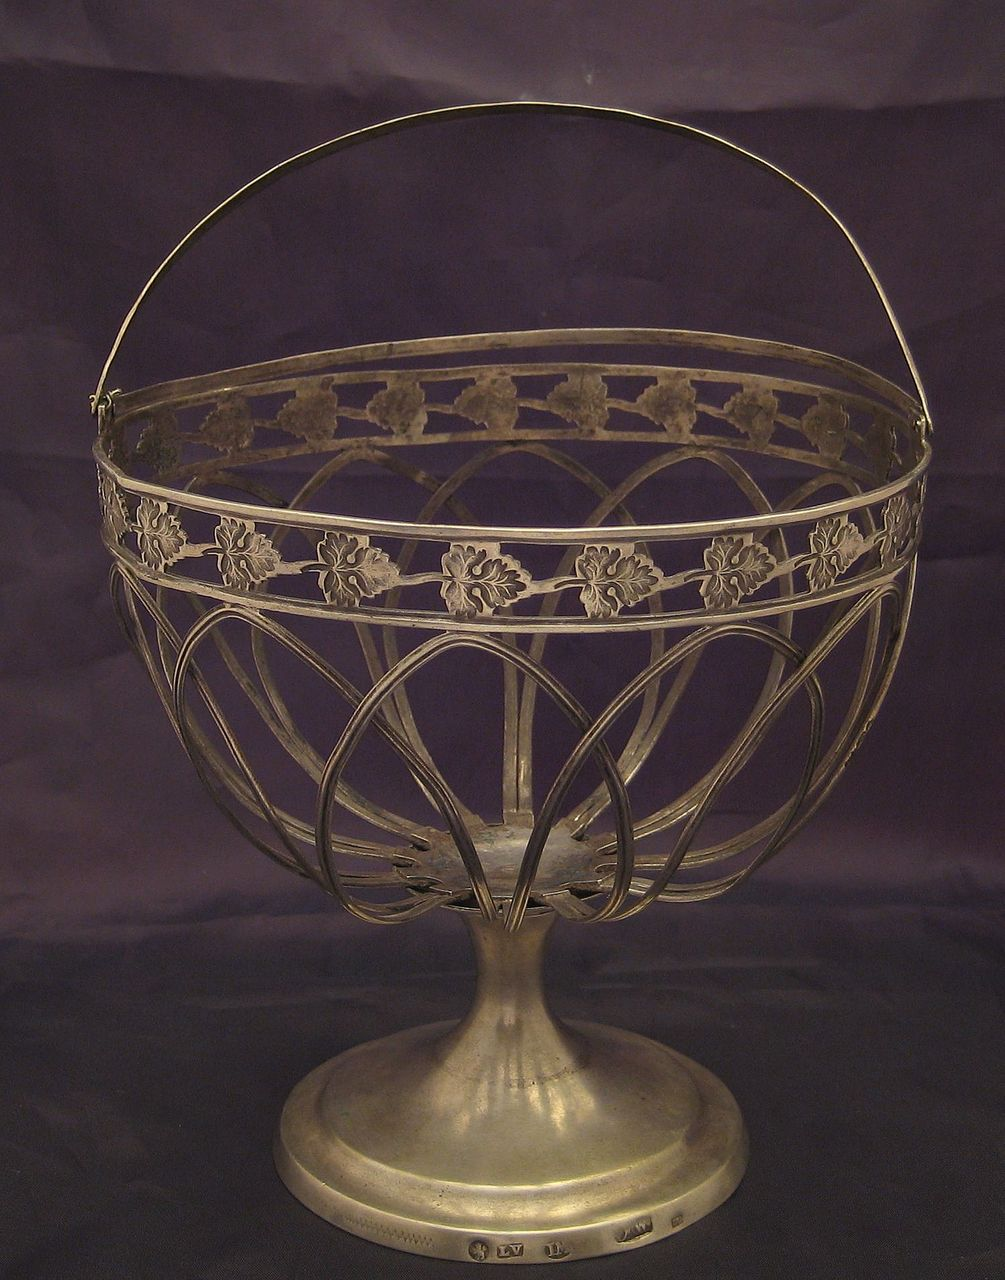 Antique Silver Basket, Berlin, Germany Late XVIII c., Early XIX c.